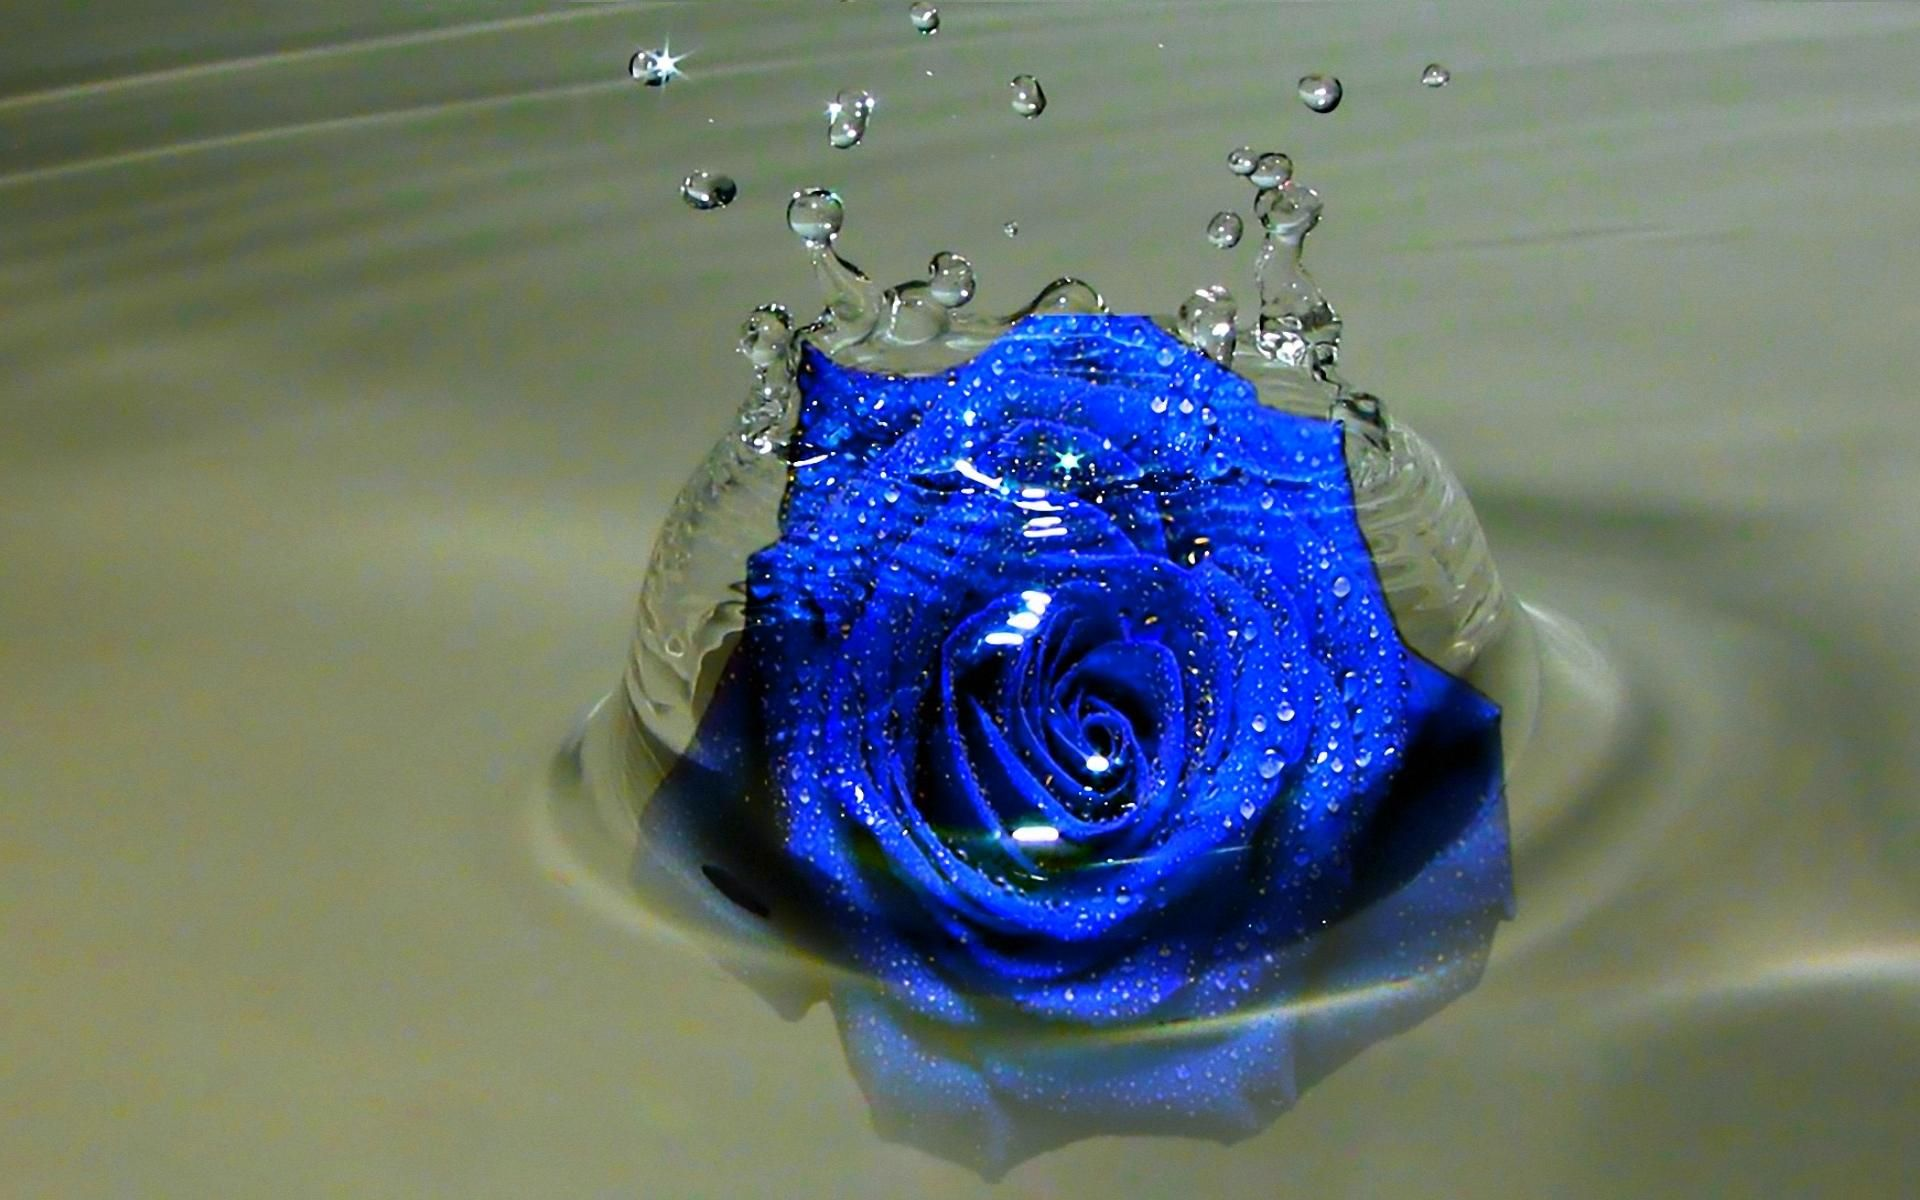 Check The Best Collection Of Blue Rose Wallpaper Hd For Desktop Laptop Tablet And Mobile Device You Blue Roses Wallpaper Beautiful Red Roses Rose Wallpaper